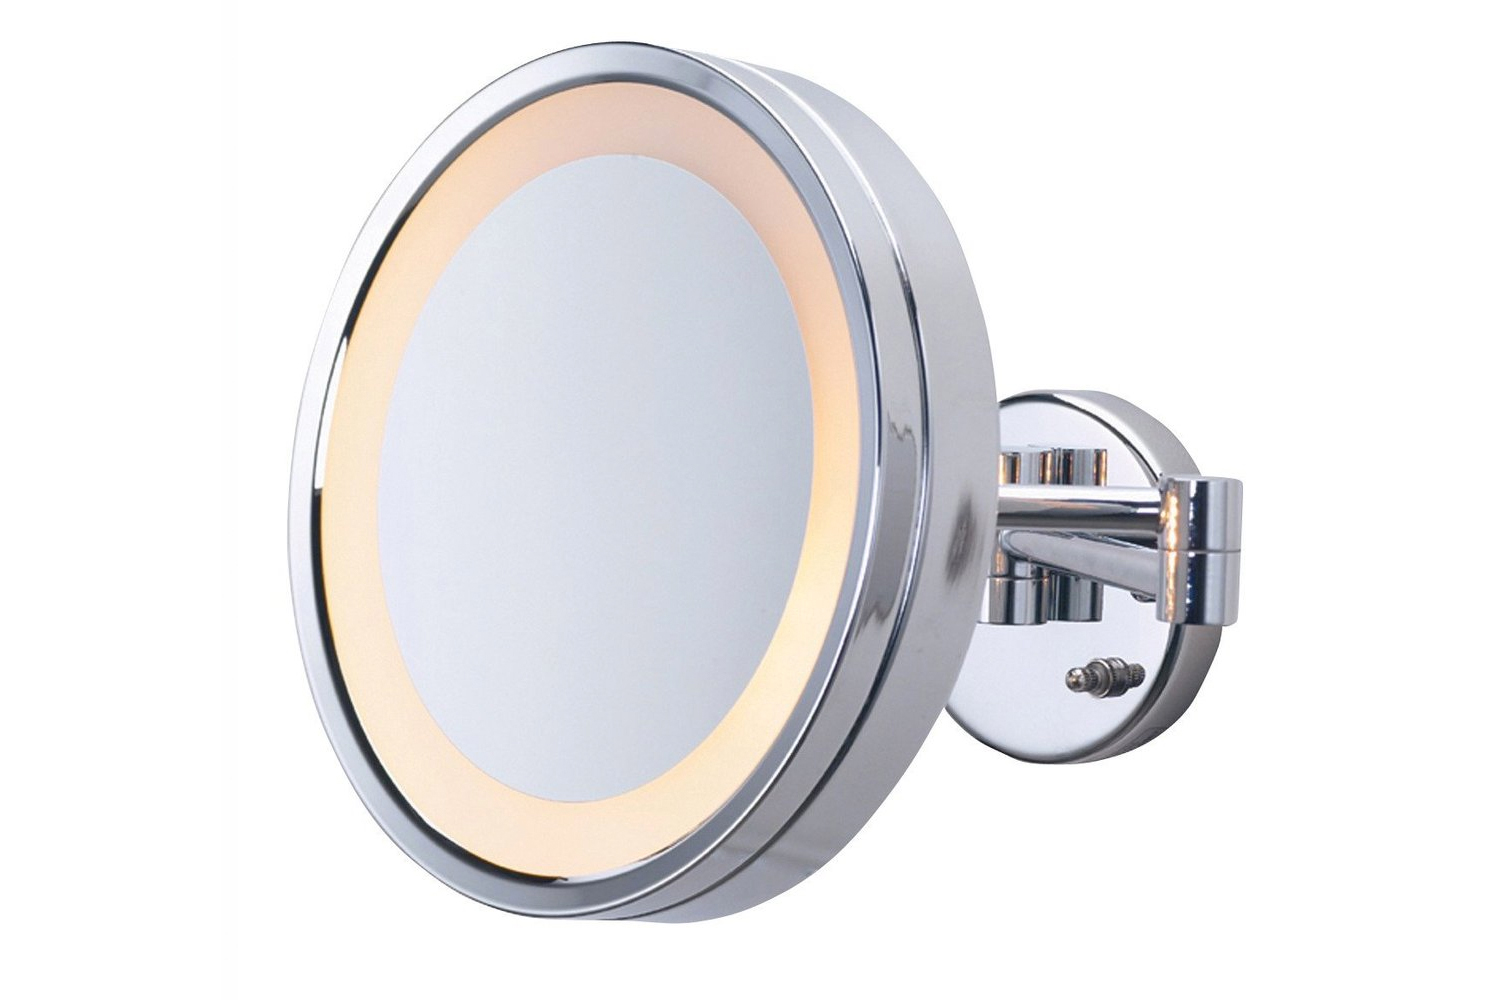 The mirror can be put wherever in the room, whether that be in the restroom or vanity area.